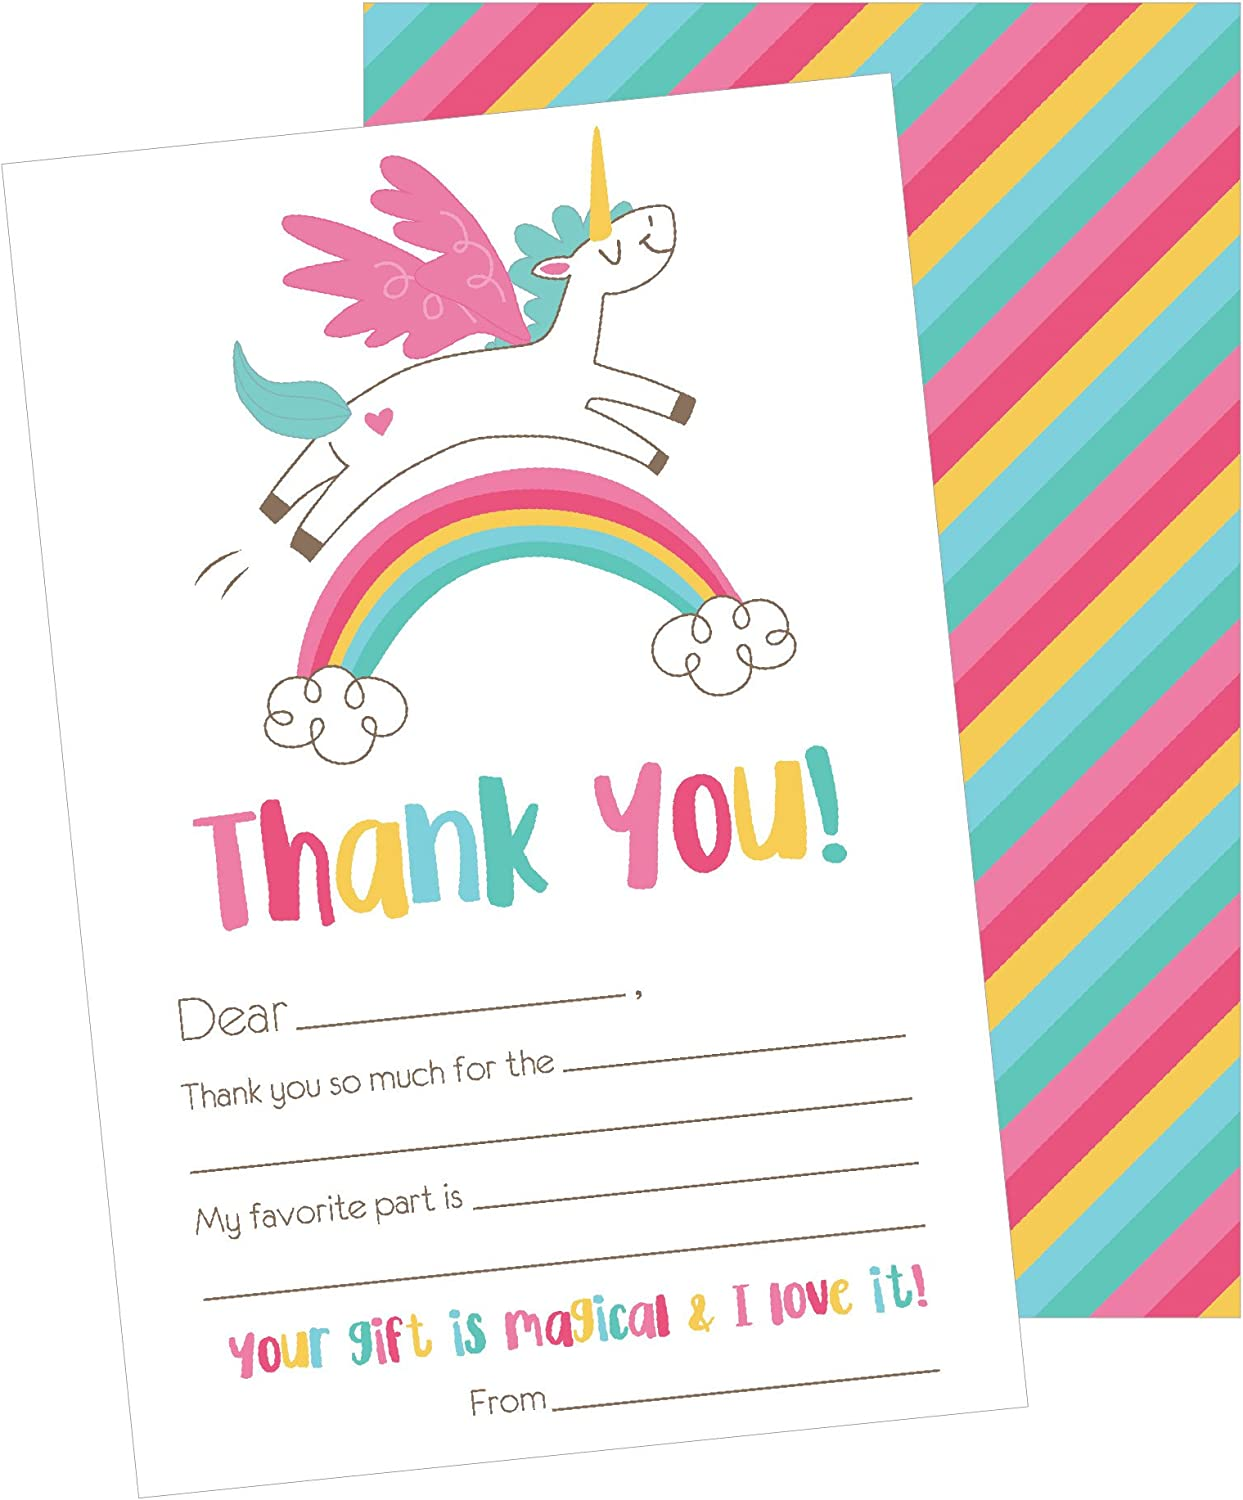 25 Unicorn Kids Thank You Cards, Fill In Thank You Notes For Kid, Blank Personalized Thank Yous For Birthday Gifts, Stationery For Children Boys and Girls